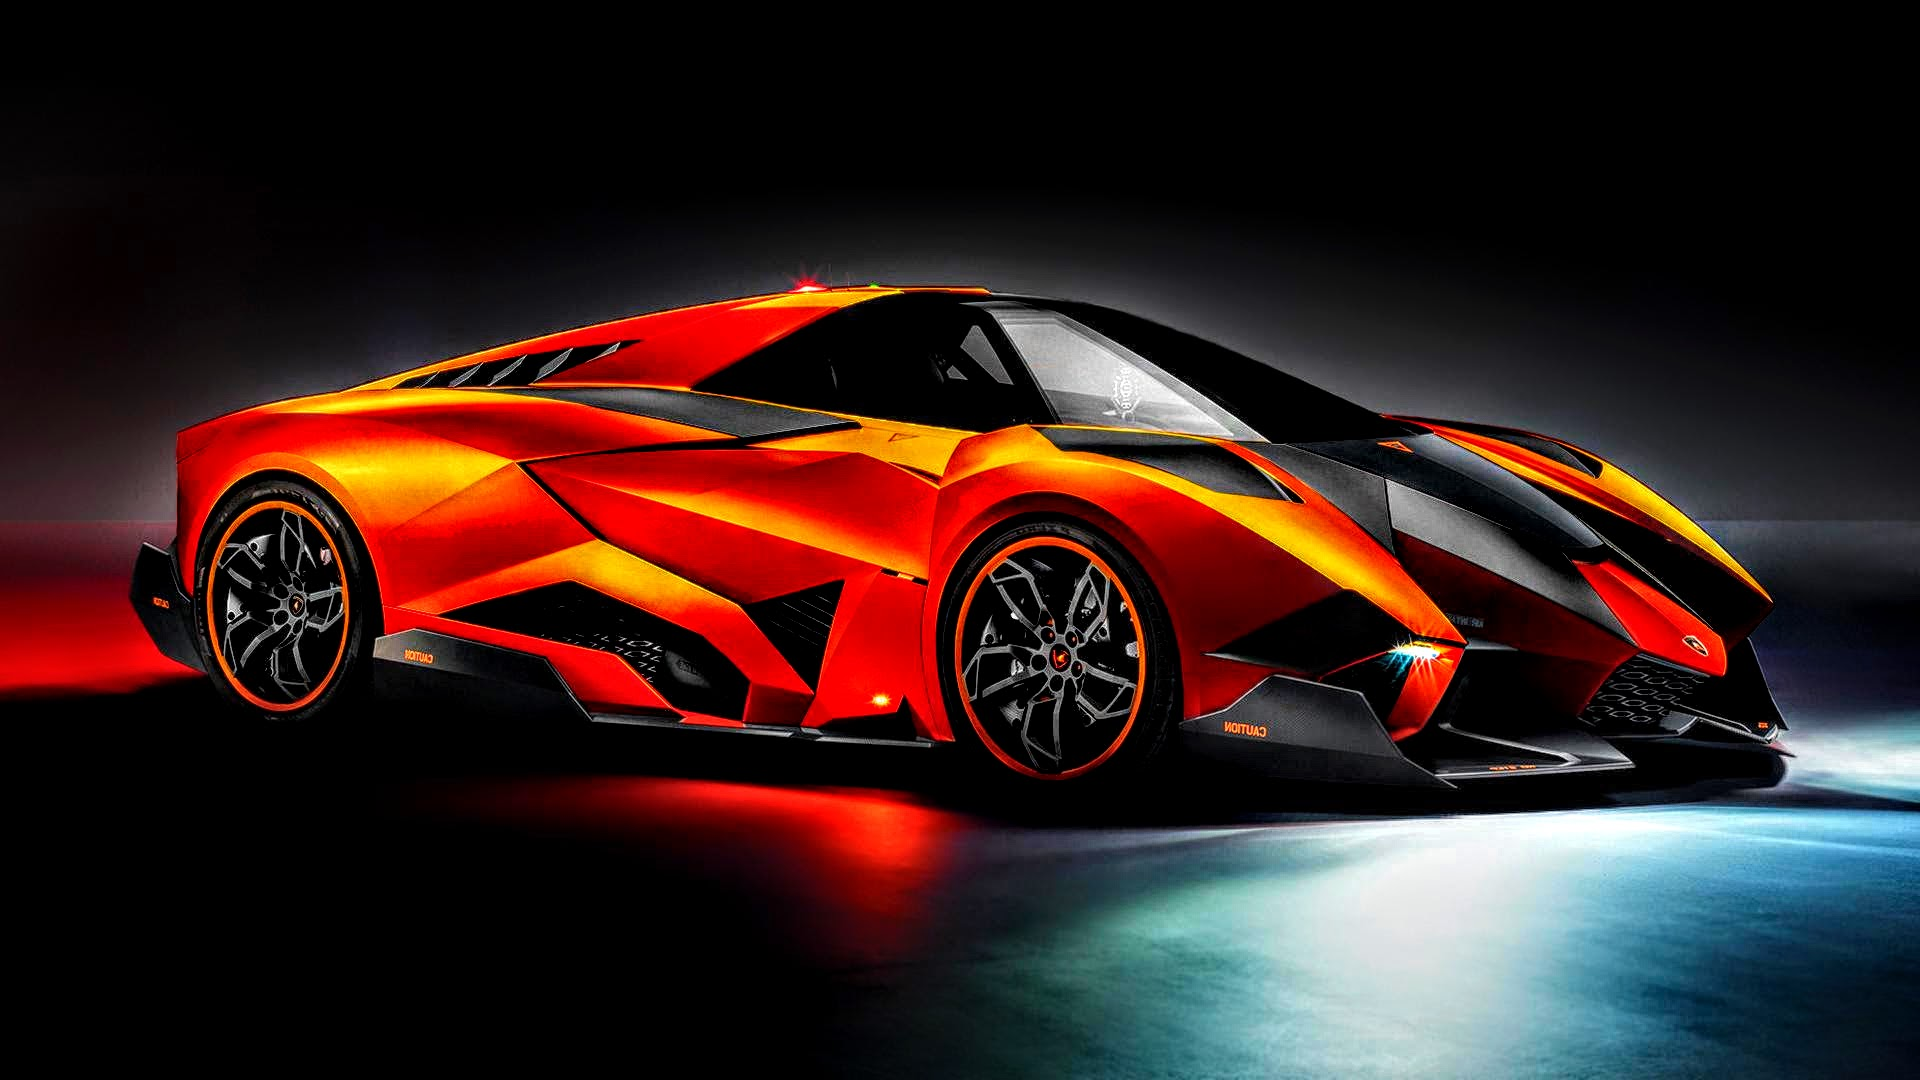 Lamborghini Egoista Exotic Orange By Rogue Rattlesnake On Deviantart